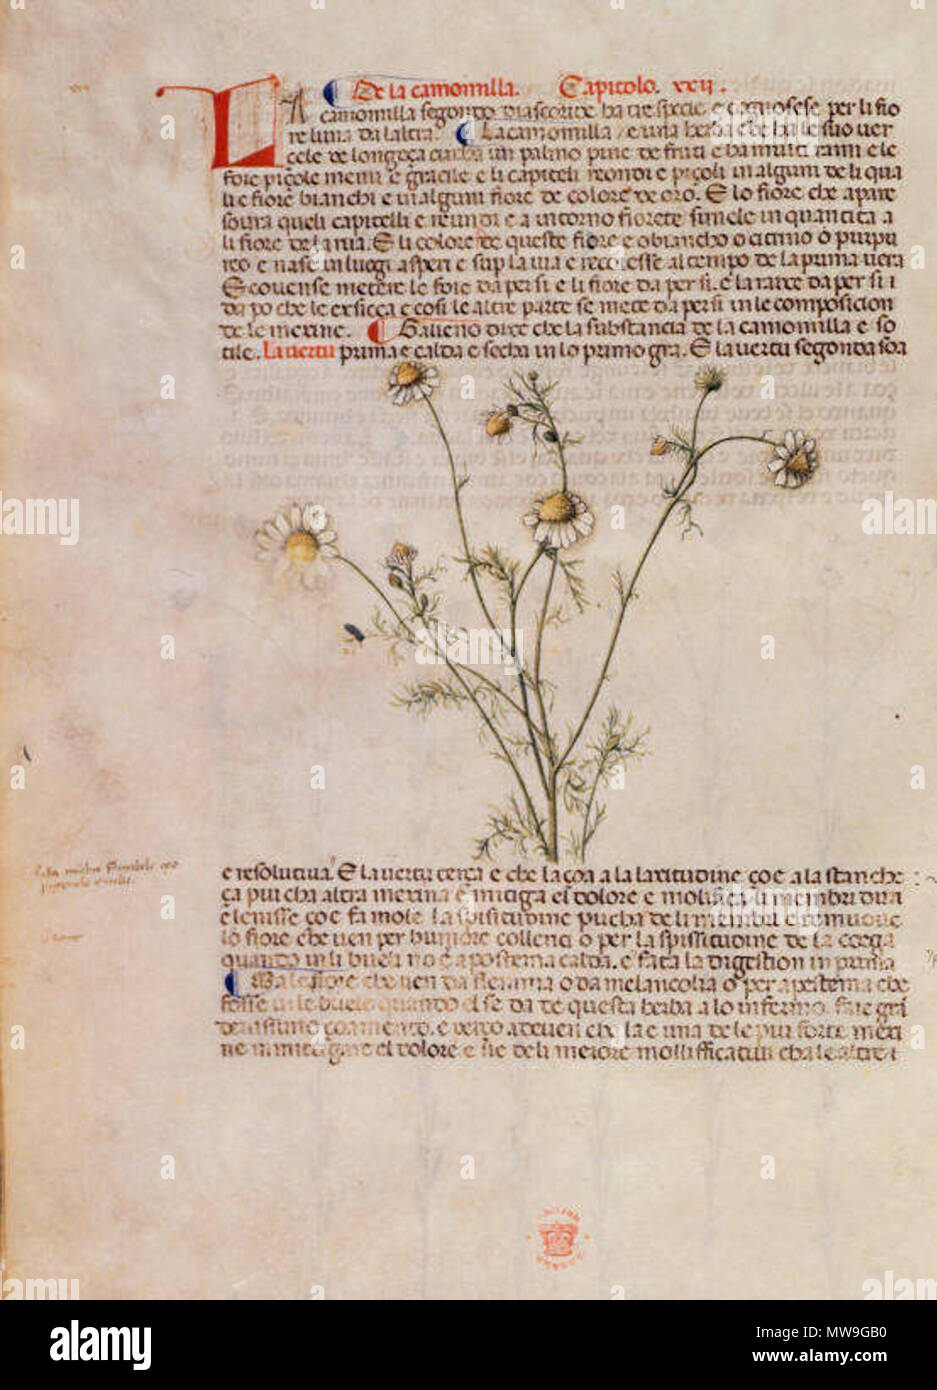 . English: arapion the Younger, Translation of the herbal (The 'Carrara Herbal'), including the Liber agrega, Herbolario volgare; De medicamentis, with index (ff. 263-265) Italy, N. (Padua); between c. 1390 and 1404 . between c. 1390 and 1404. An Italian translation, possibly from a Latin translation, of a treatise orginally written in Arabic by Serapion the Younger (Ibn Sarabi, likely 12th century). 115 Carrara Herbal10 - Stock Image